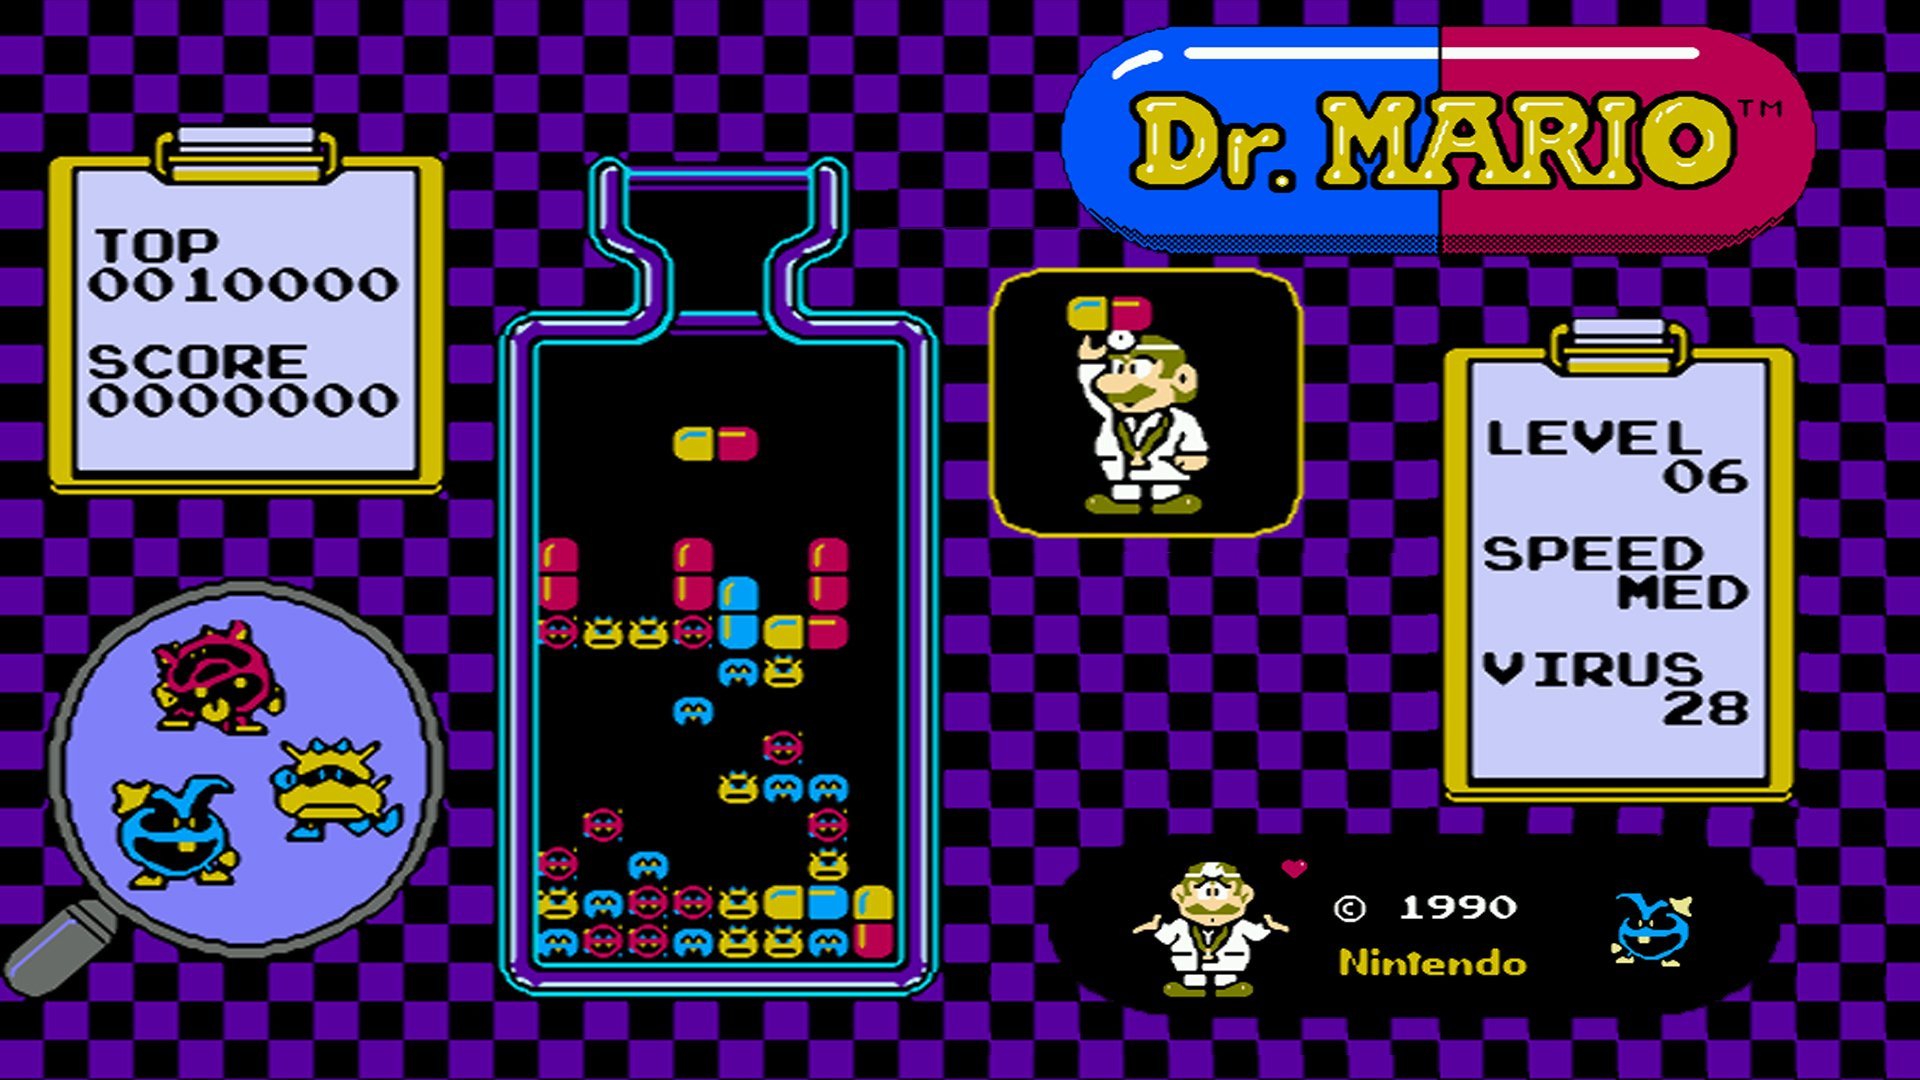 5 dr mario hd wallpapers background images wallpaper abyss